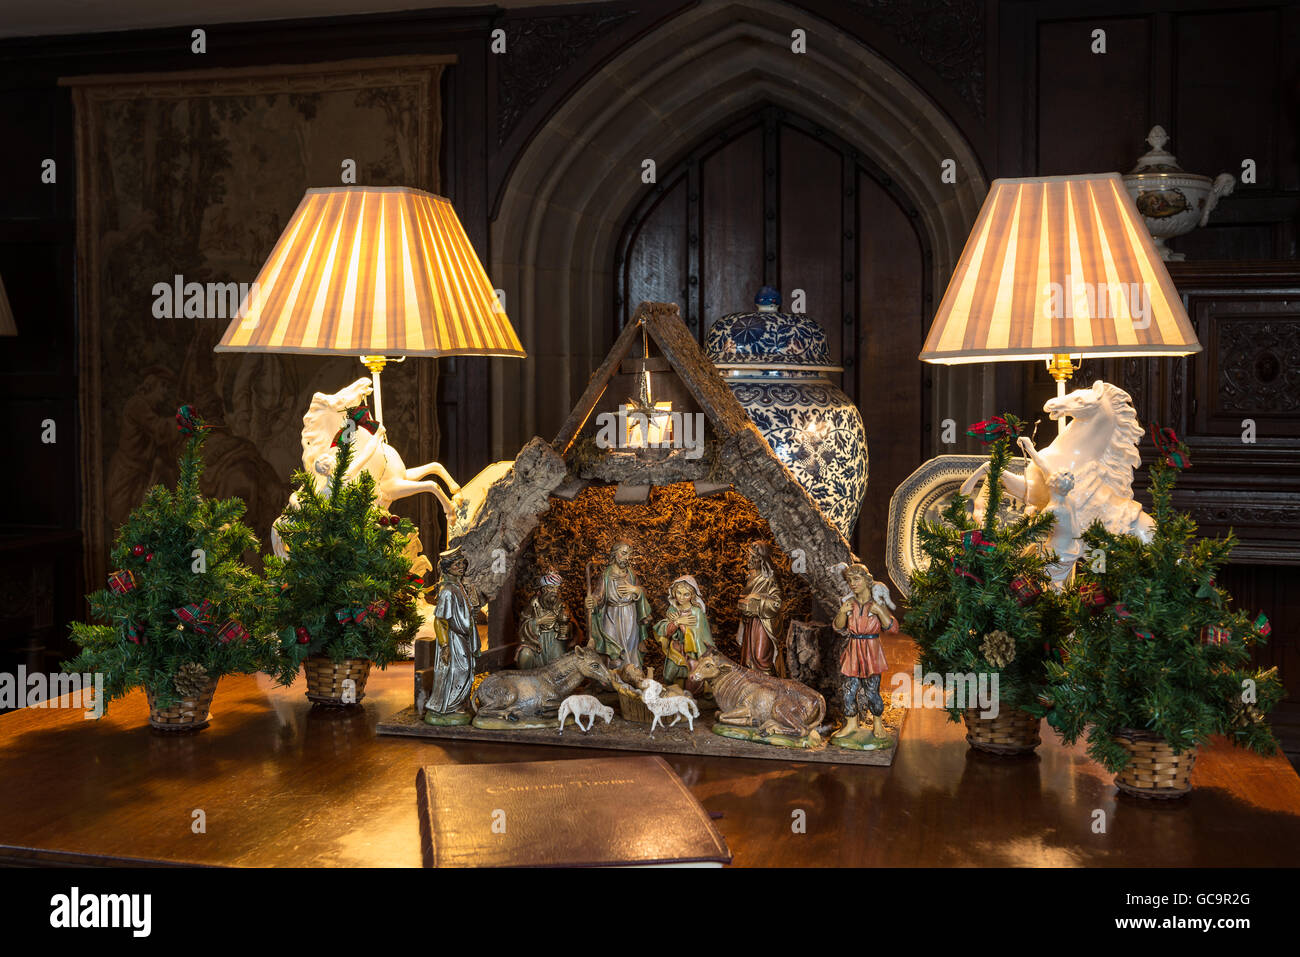 Equestrian lamps and nativity scene in Grade I listed, Victorian gothic Carlton Towers, East Riding - Stock Image